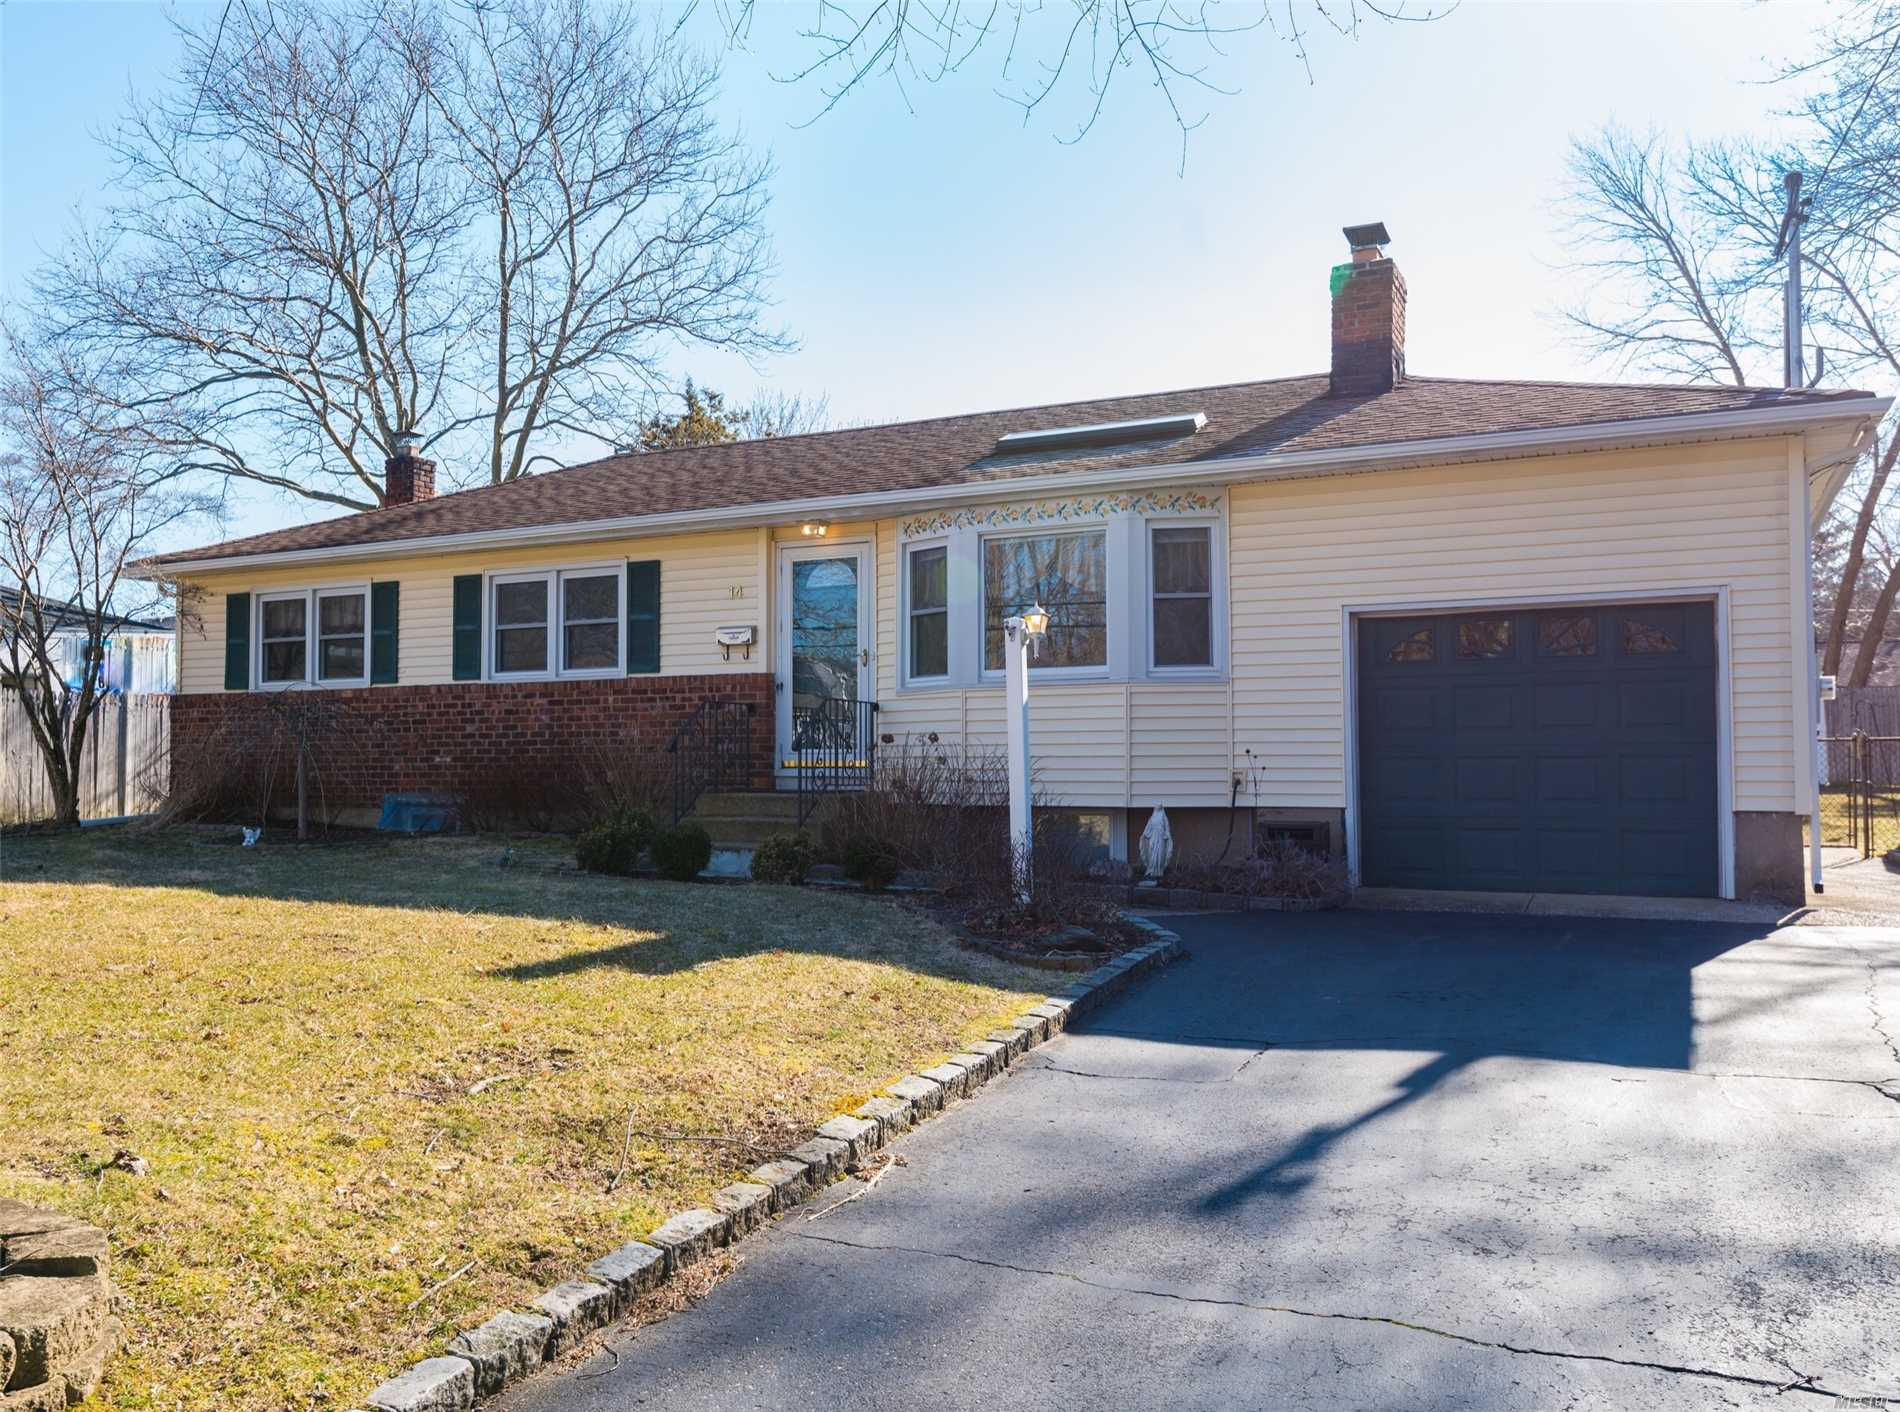 Lovely 3 Bedroom / 1 Bath Ranch in the Elwood School District. Features a Large and Inviting Living Room with Skylight and Wood Burning Fireplace. Great Flat Fenced-in Backyard with Large Patio.